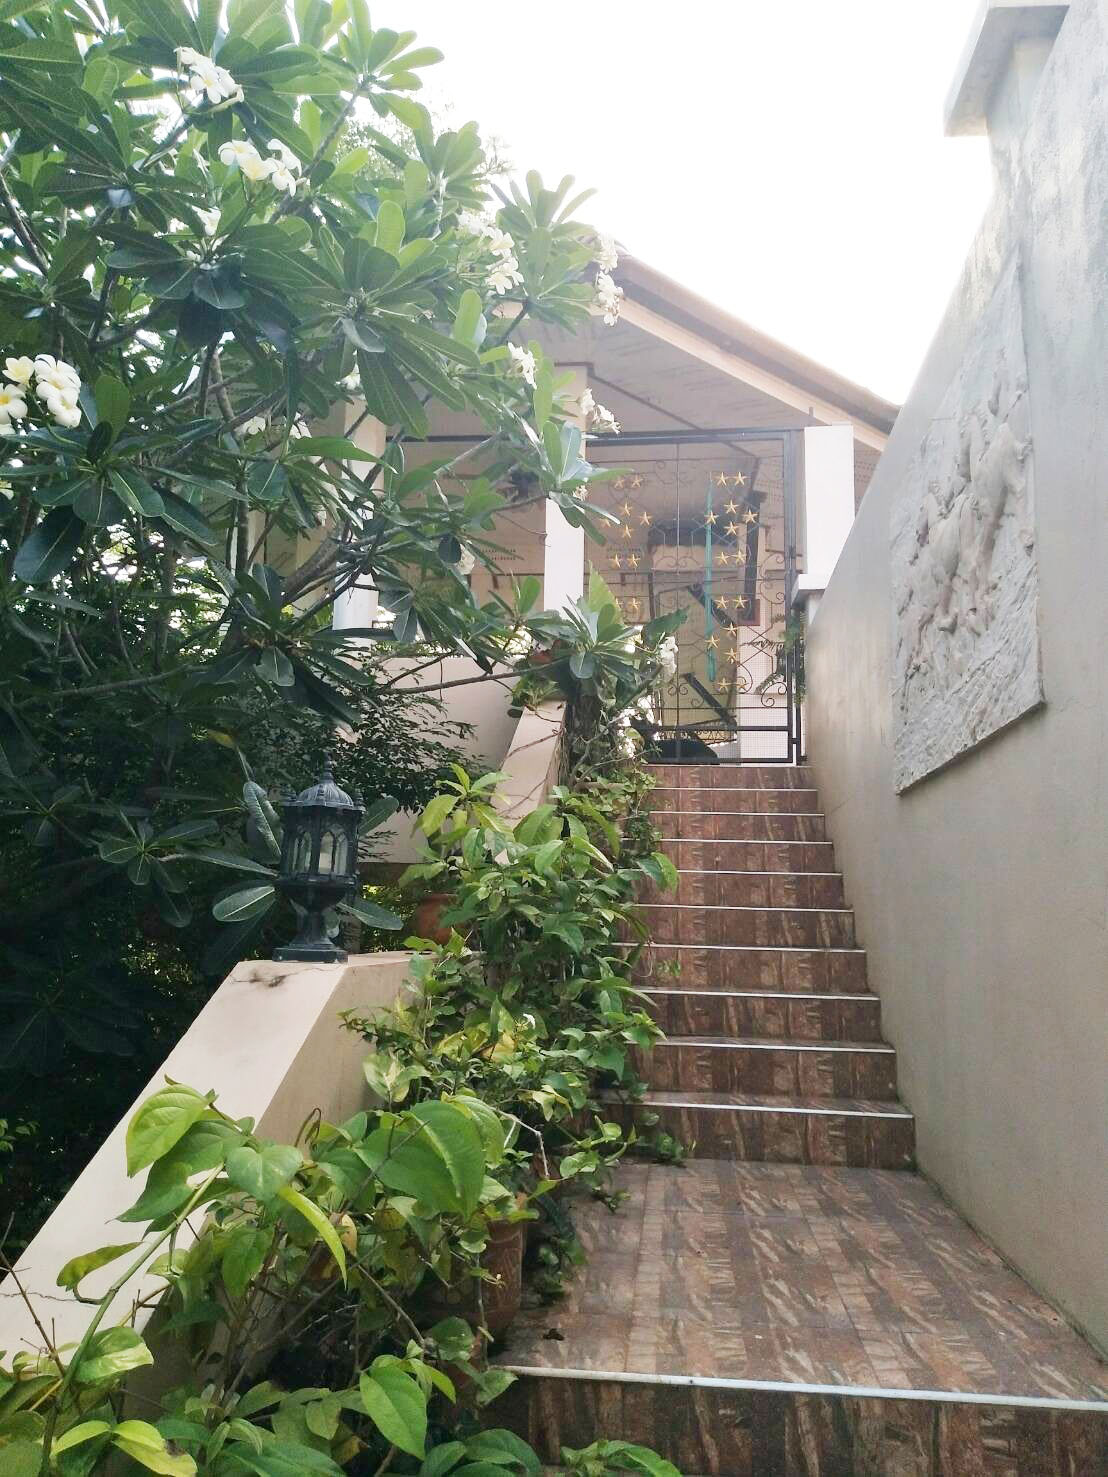 Entrance stairs to the House